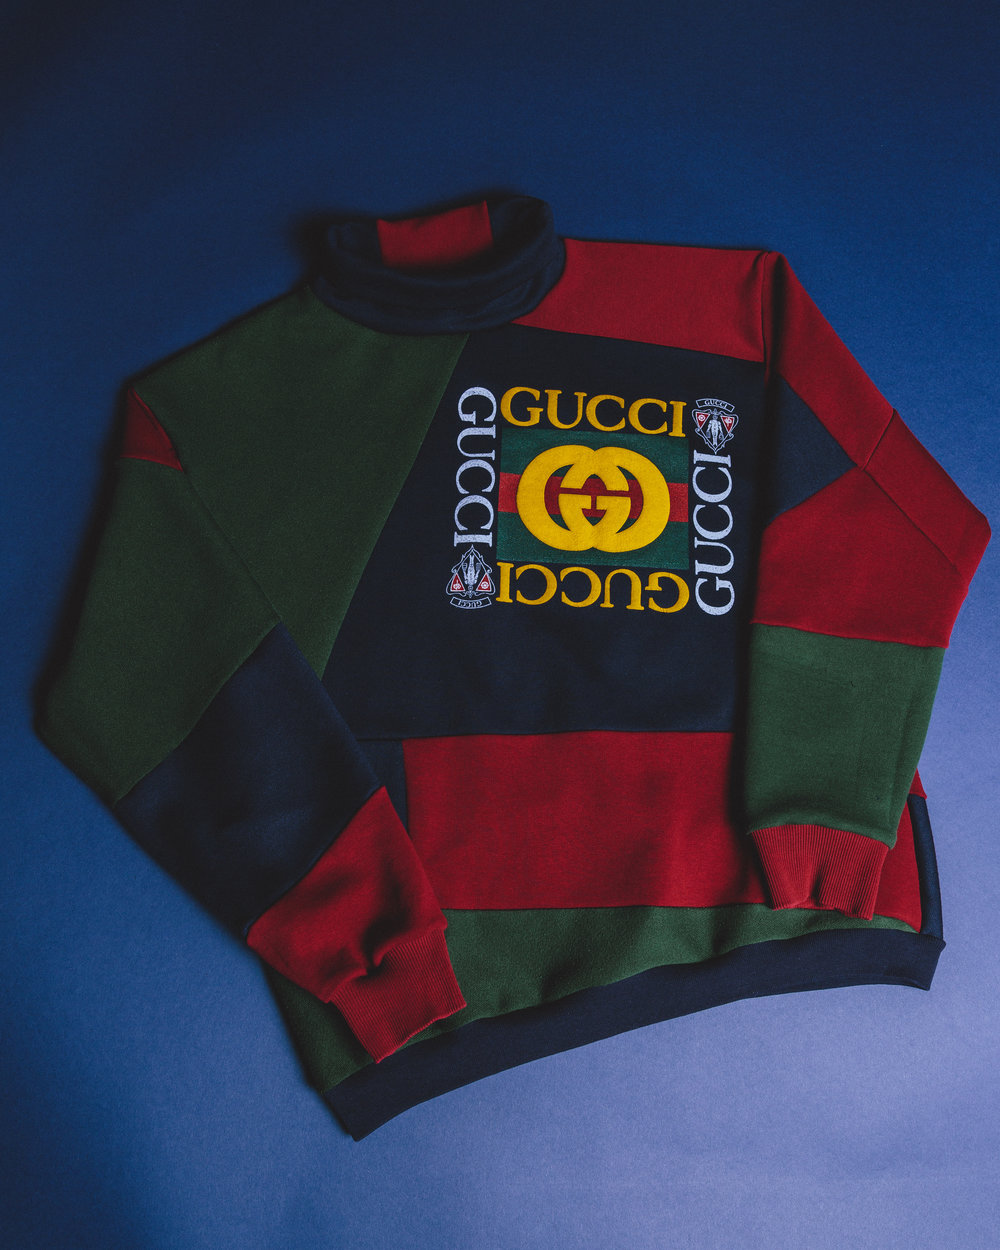 Gucci Rework - Made from a vintage gucci hoodie that had a rip down the arm so I chopped it up and reincarnated it.